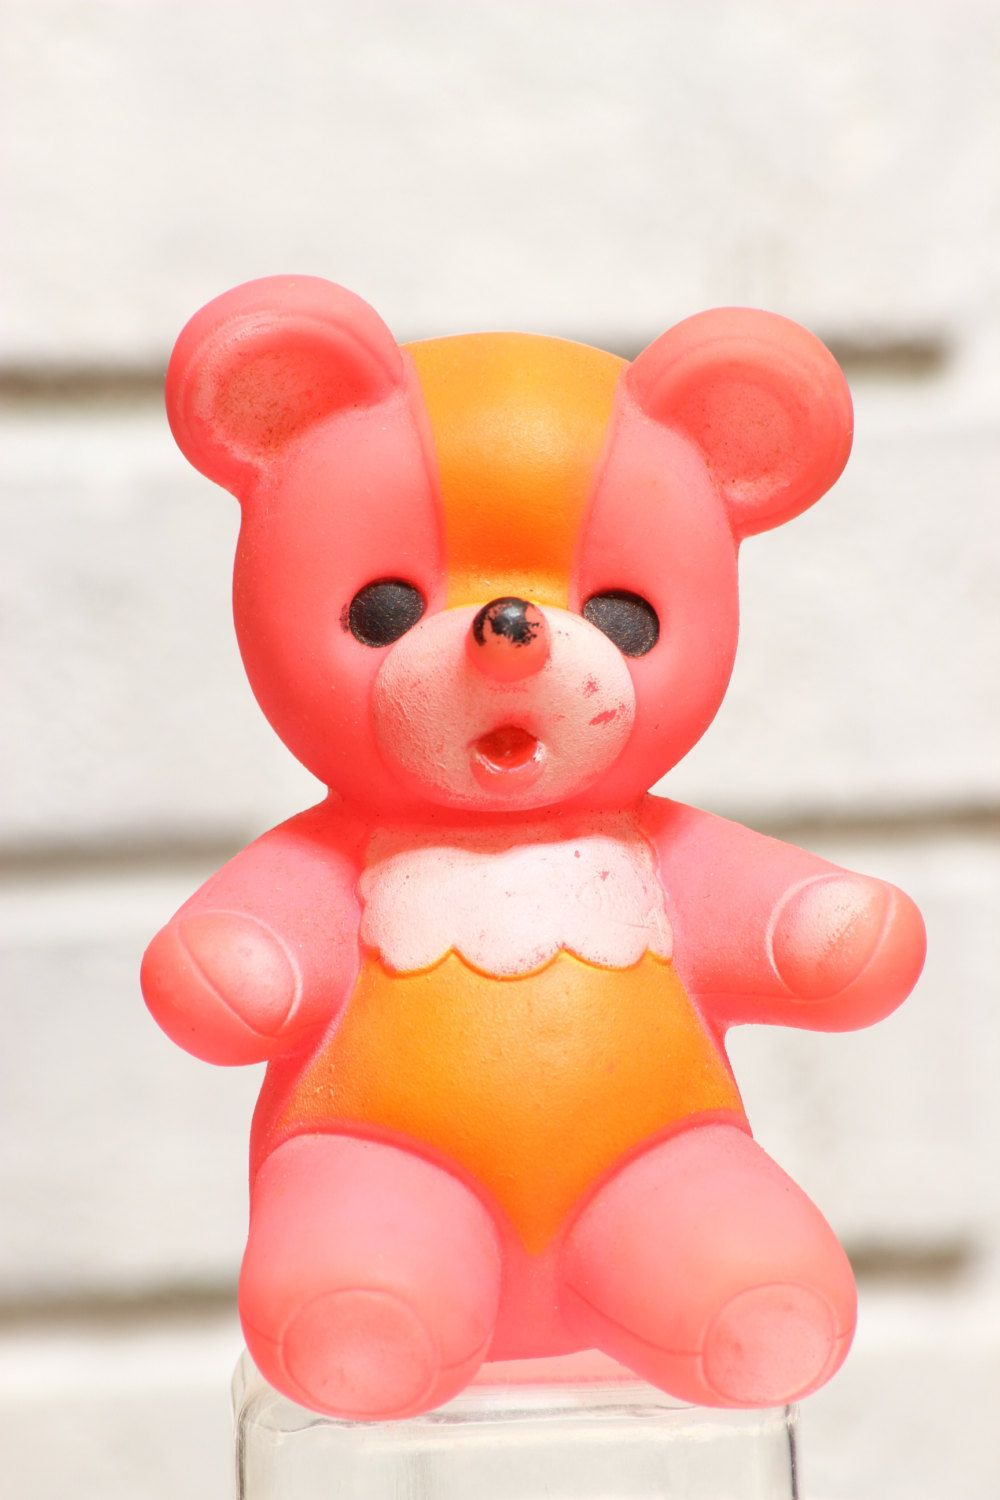 Vintage Pink Teddy Bear Baby Toy Squeaky Rubber Toy By